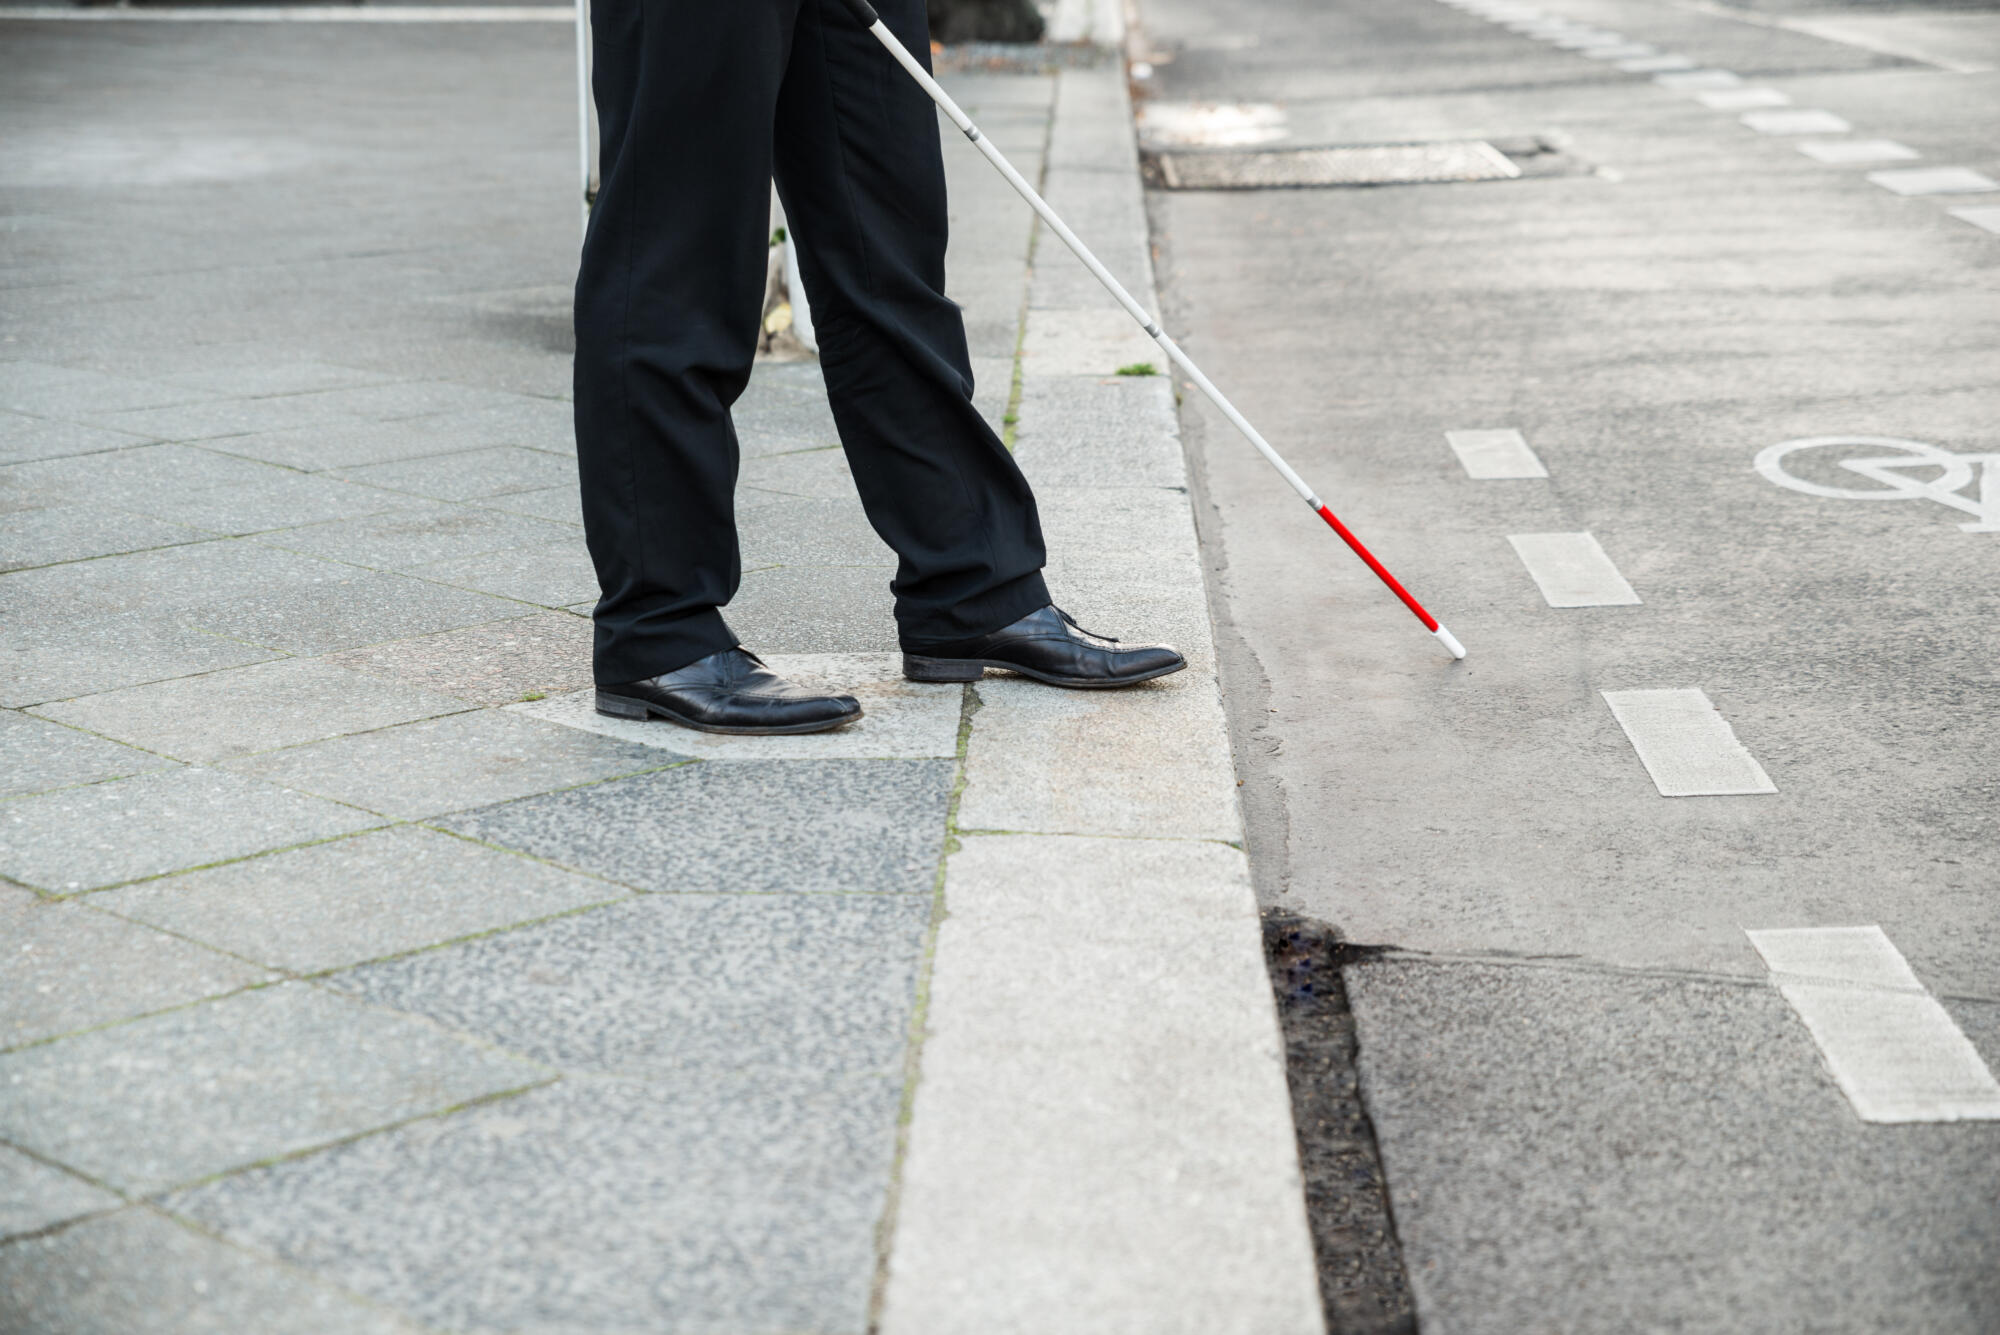 Île-de-France Mobilités and SNCF facilitate transport journeys for visually impaired